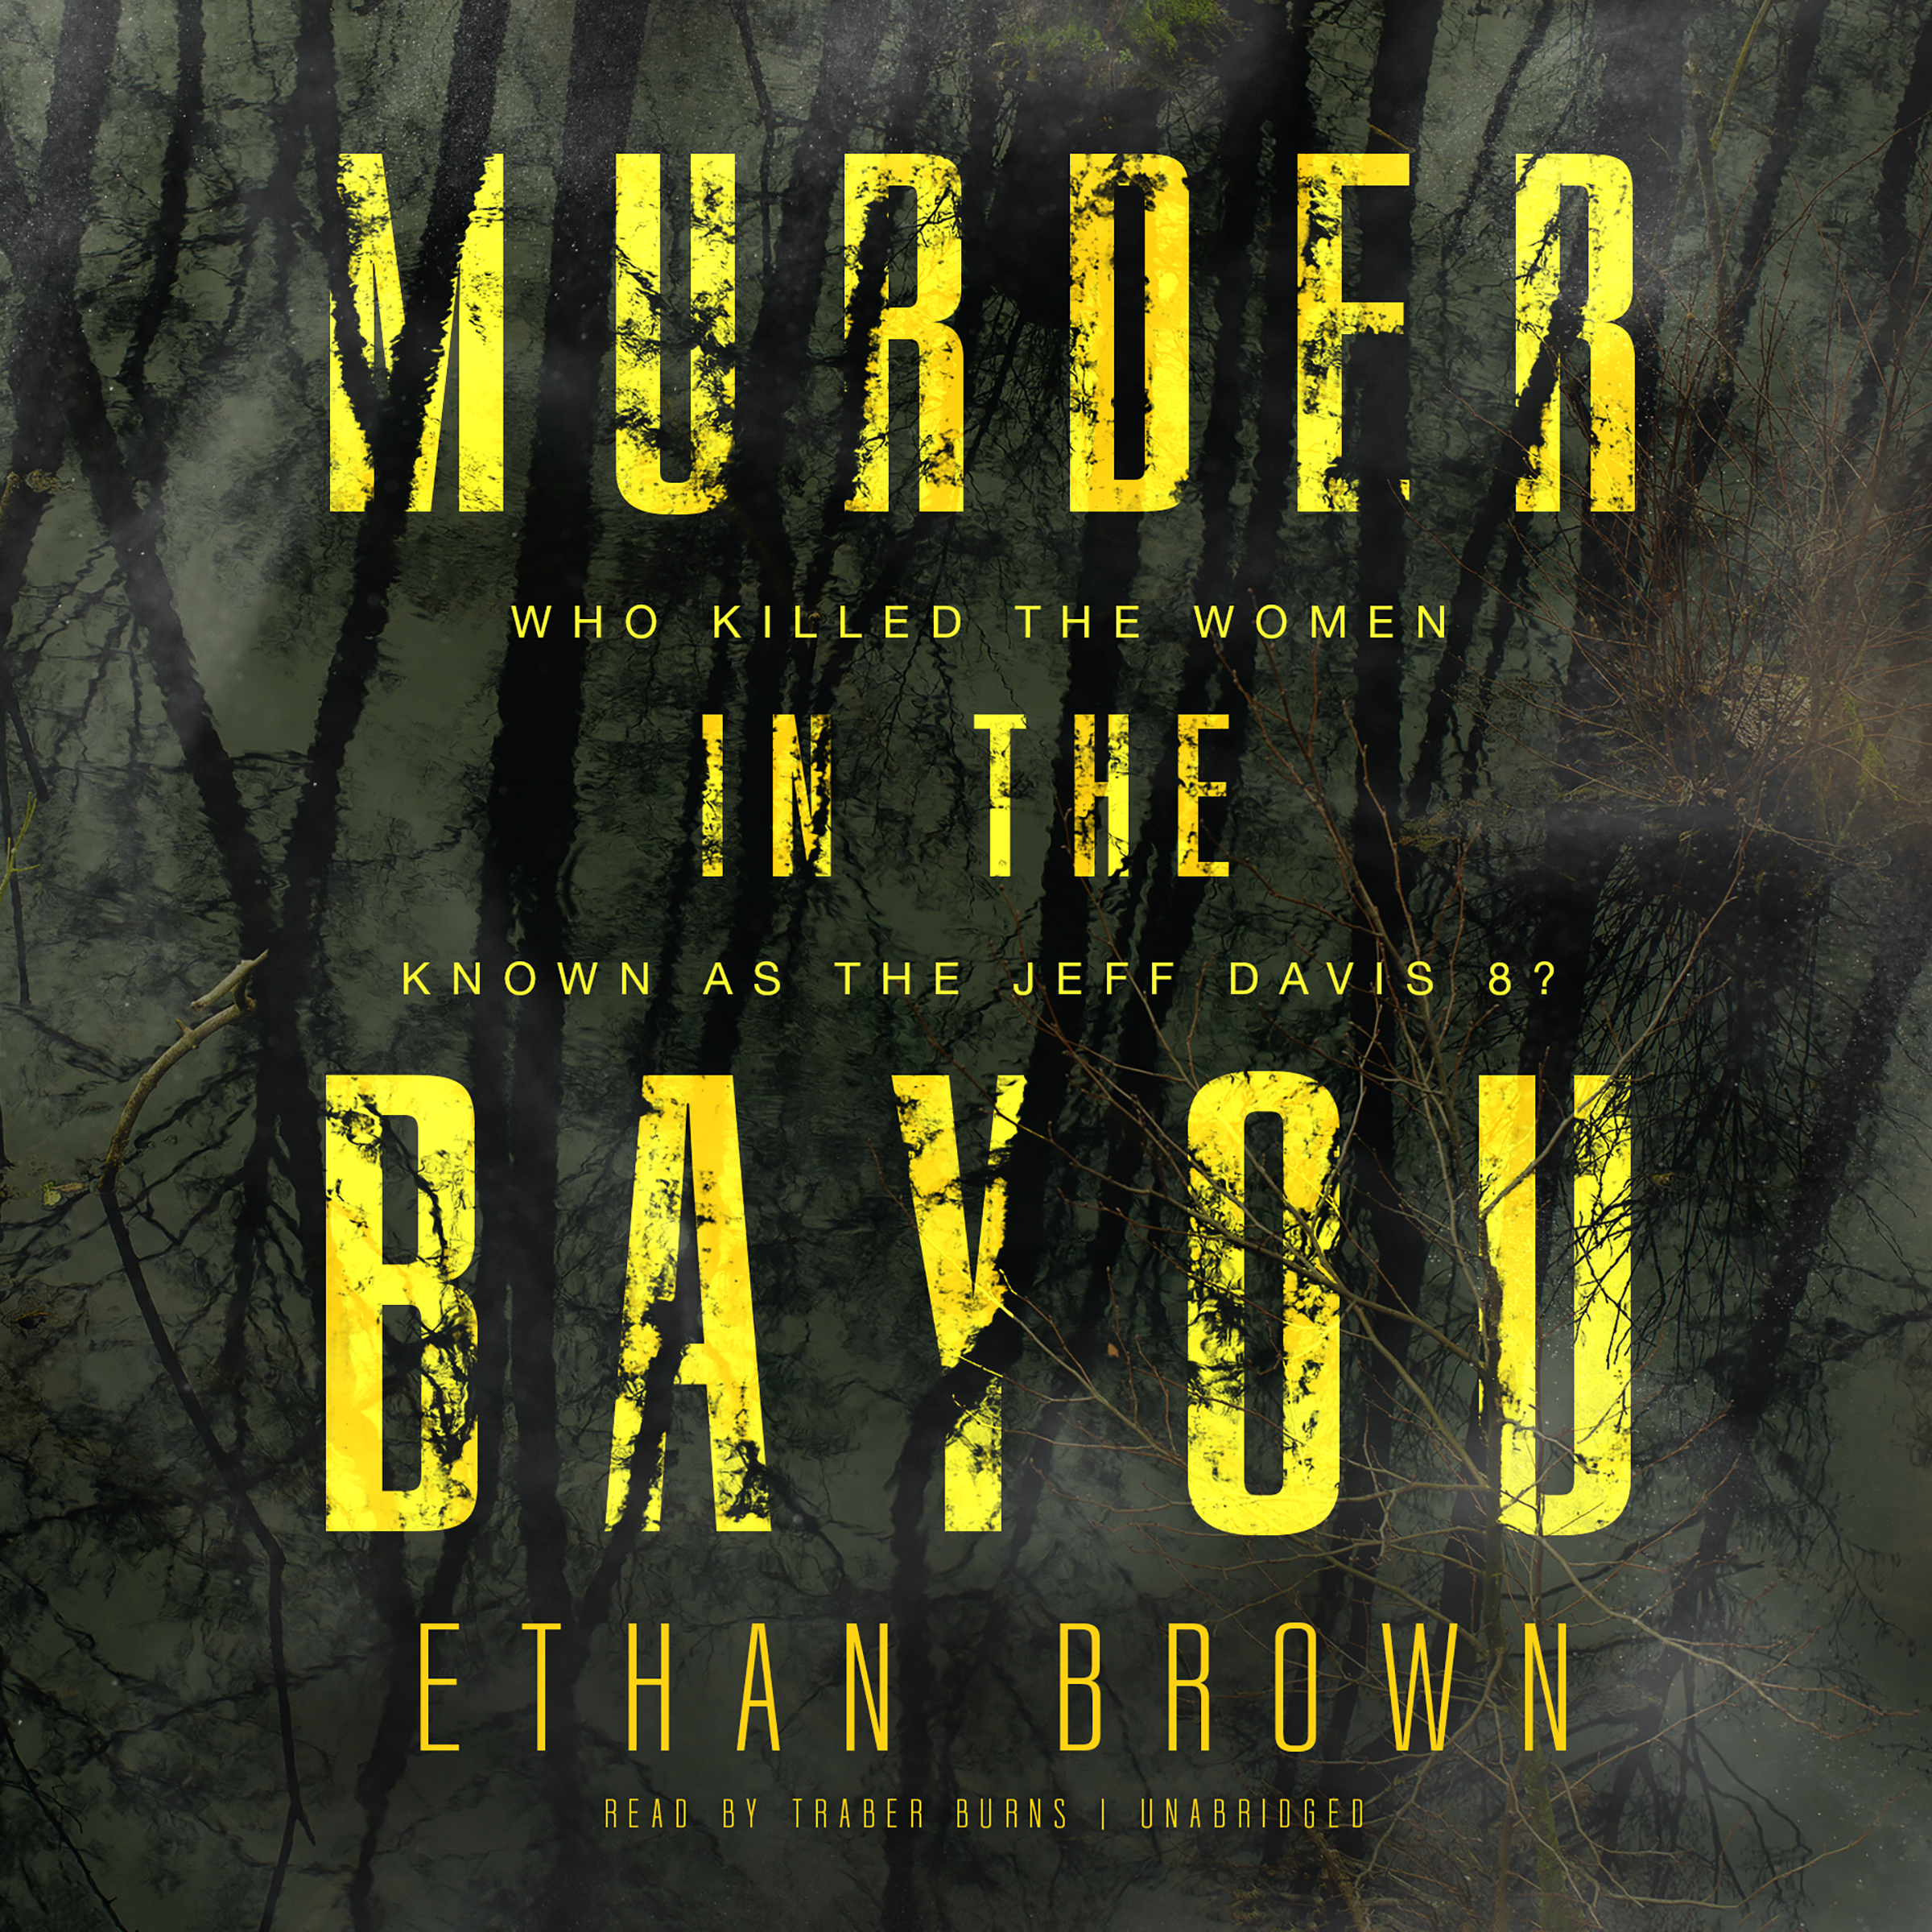 Printable Murder in the Bayou: Who Killed the Women Known as the Jeff Davis 8? Audiobook Cover Art